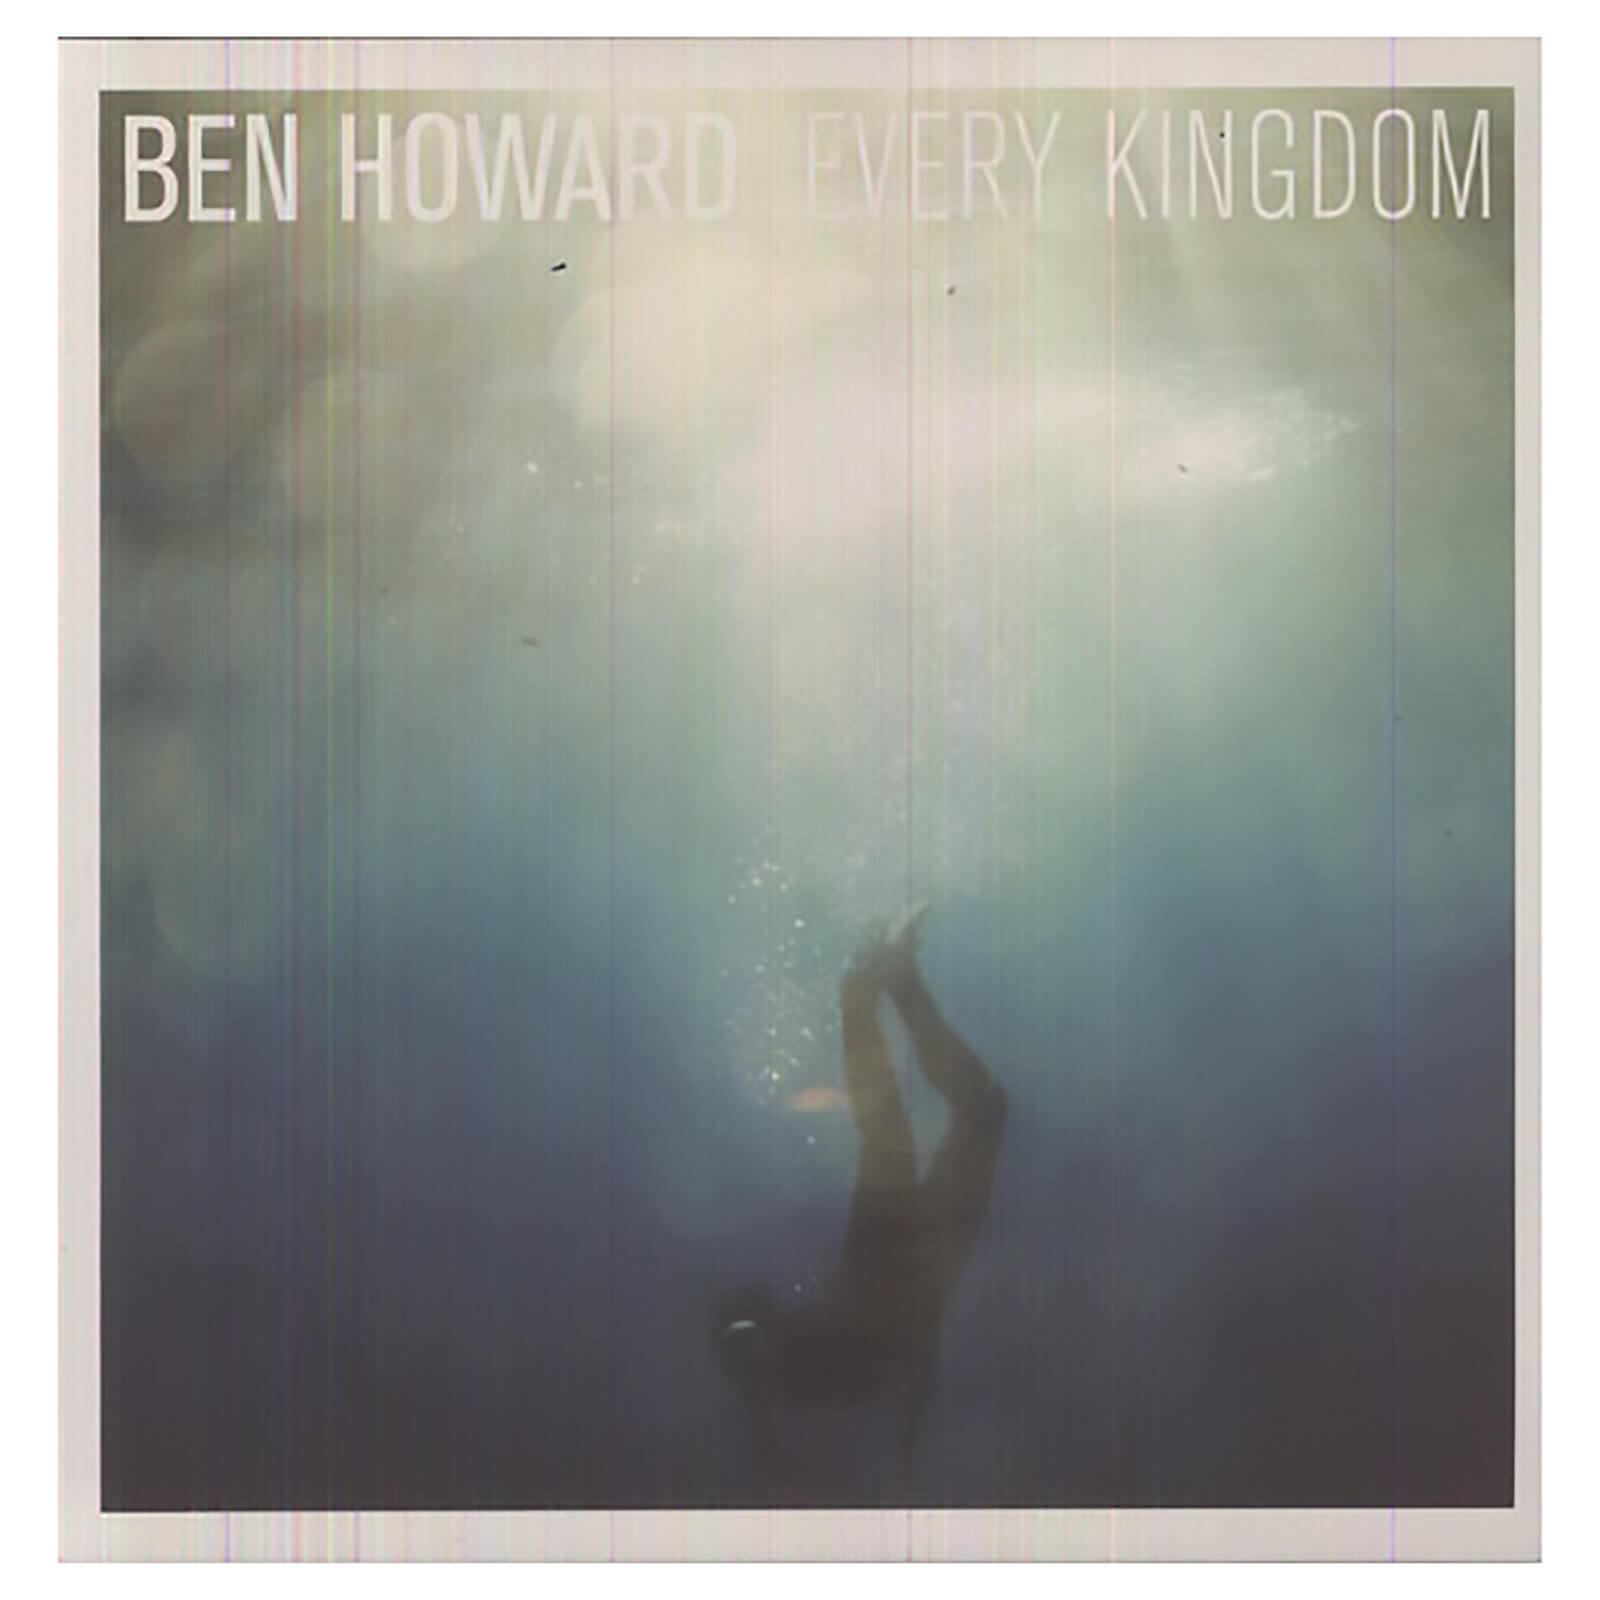 Ben Howard - Every Kingdom - Vinyl